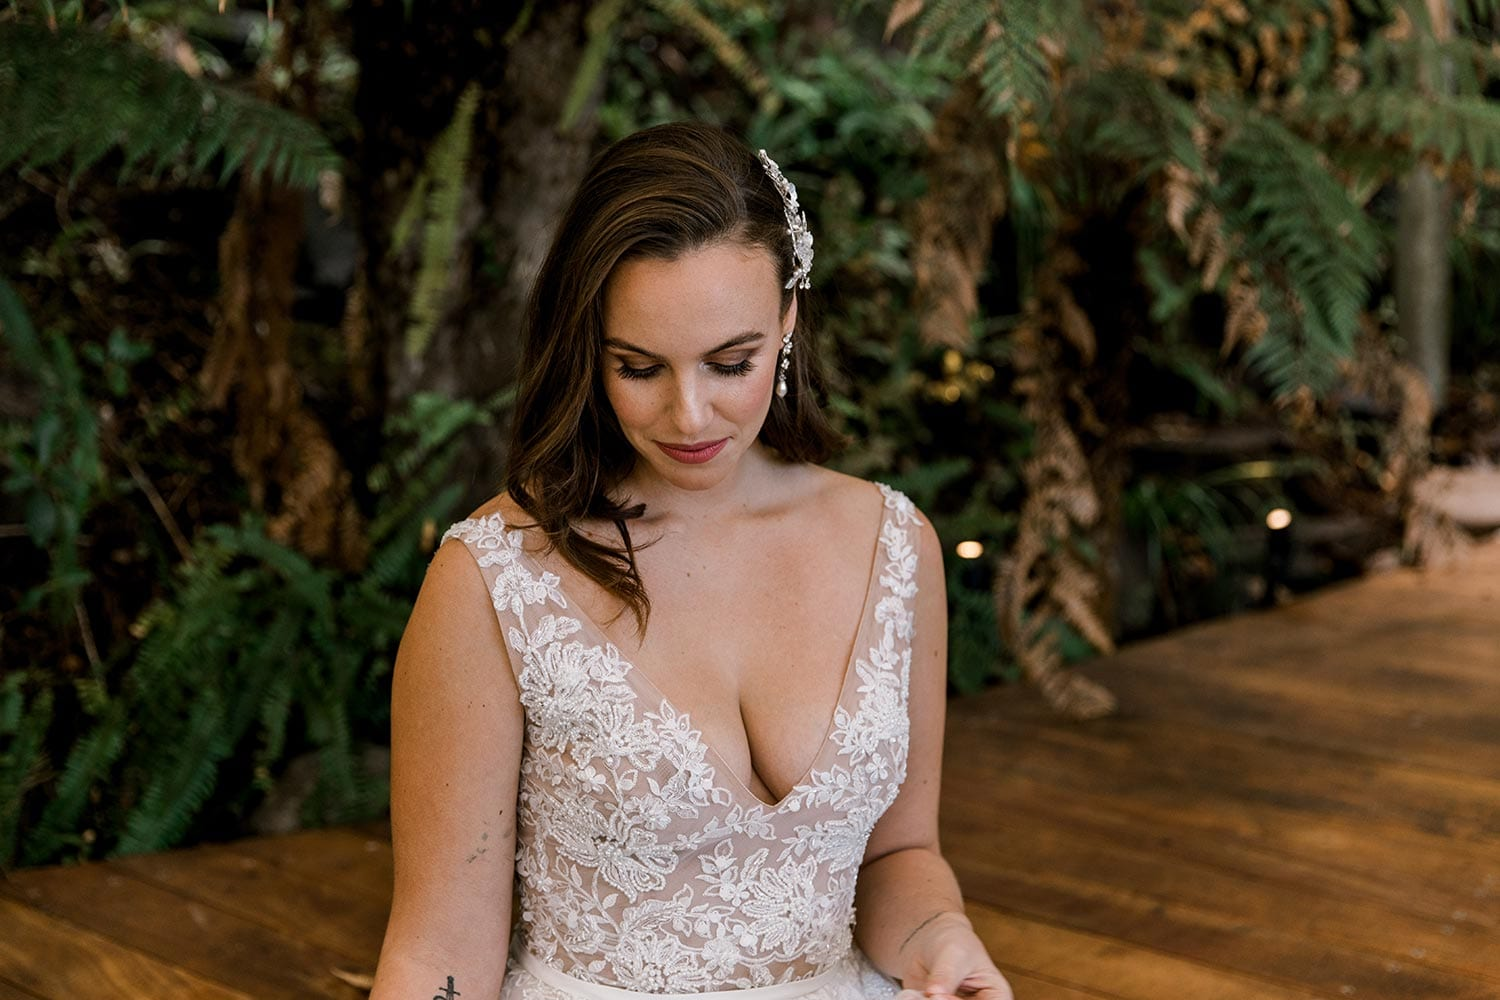 Vivian Wedding gown from Vinka Design - A stunning gown with a deep V-neckline on both the front & back. Fitted semi-sheer nude bodice embellished with a beaded floral lace, a soft layered tulle skirt. Worn in conservatory with fern background, head to waist showing V-neckline detail.